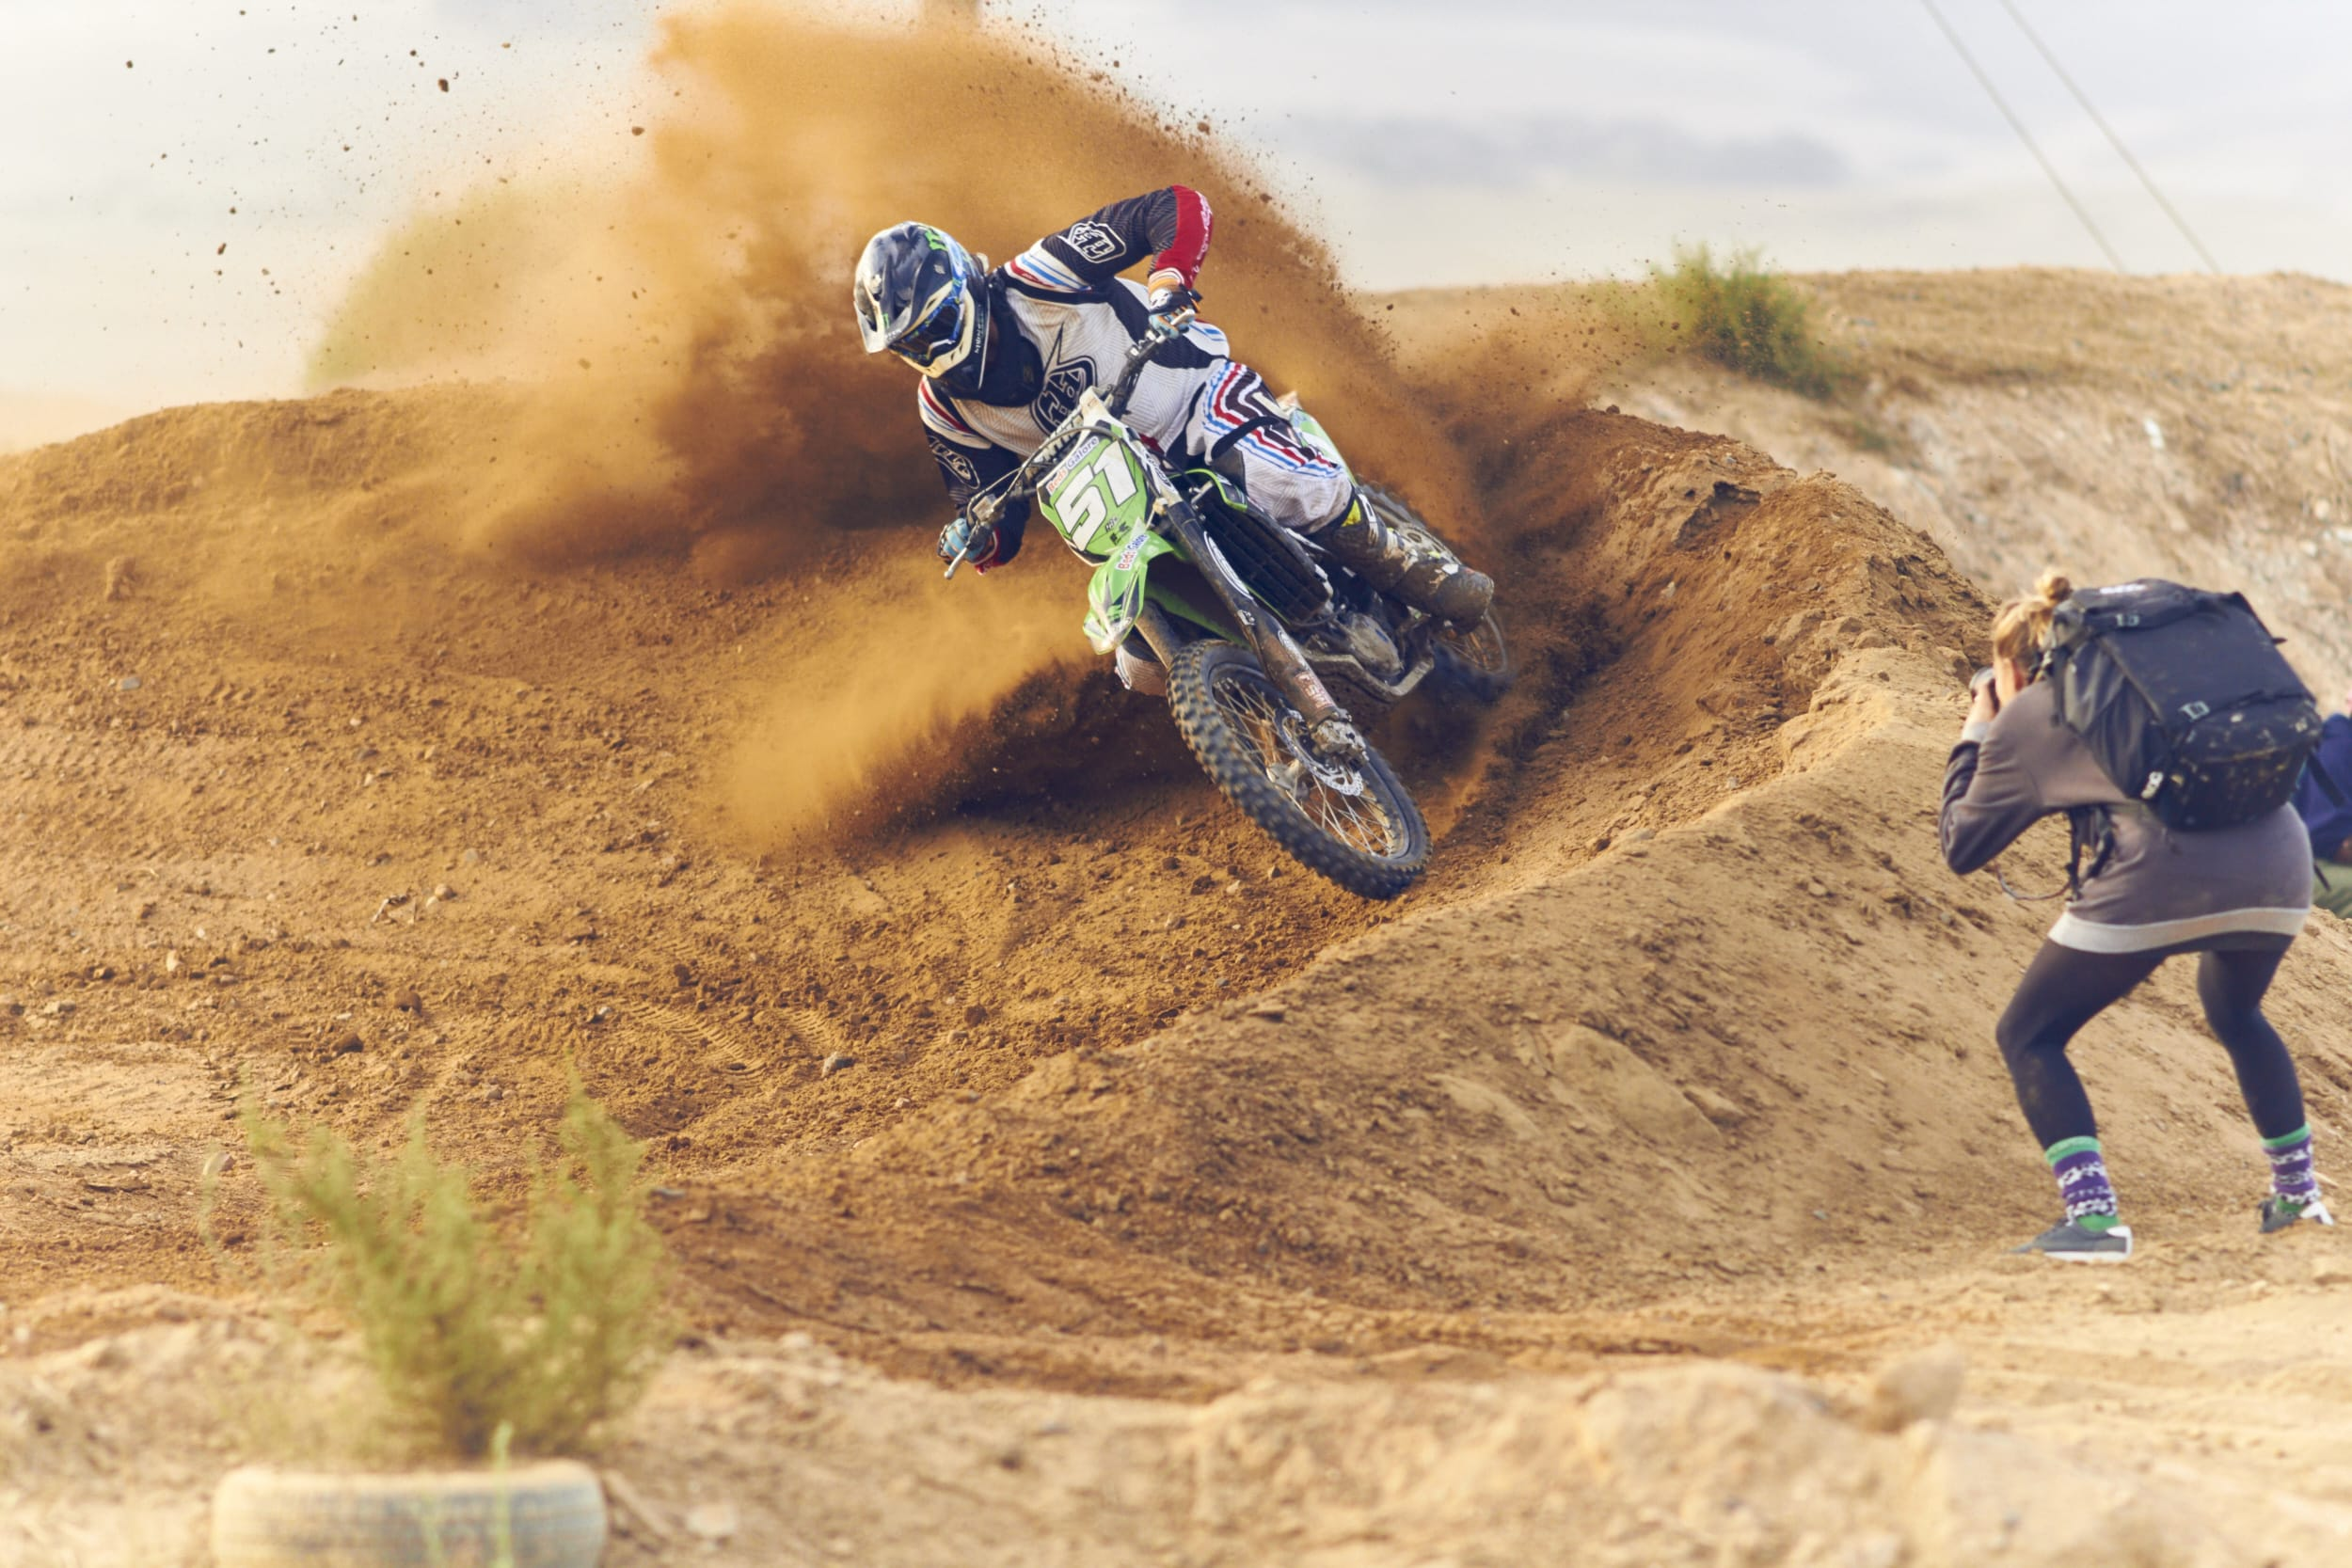 cpt_motorcross 280 ©martinsass